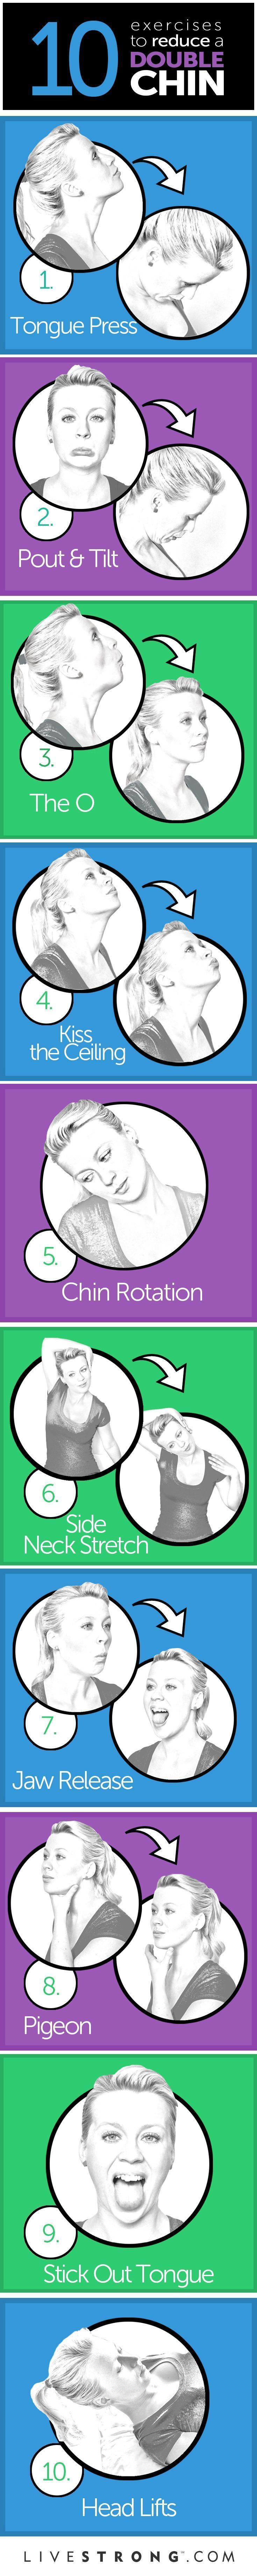 Have all your selfies sprouted second chins lately? Thankfully, neck and chin toning can be achieved without surgery -- all it takes is adding a few...